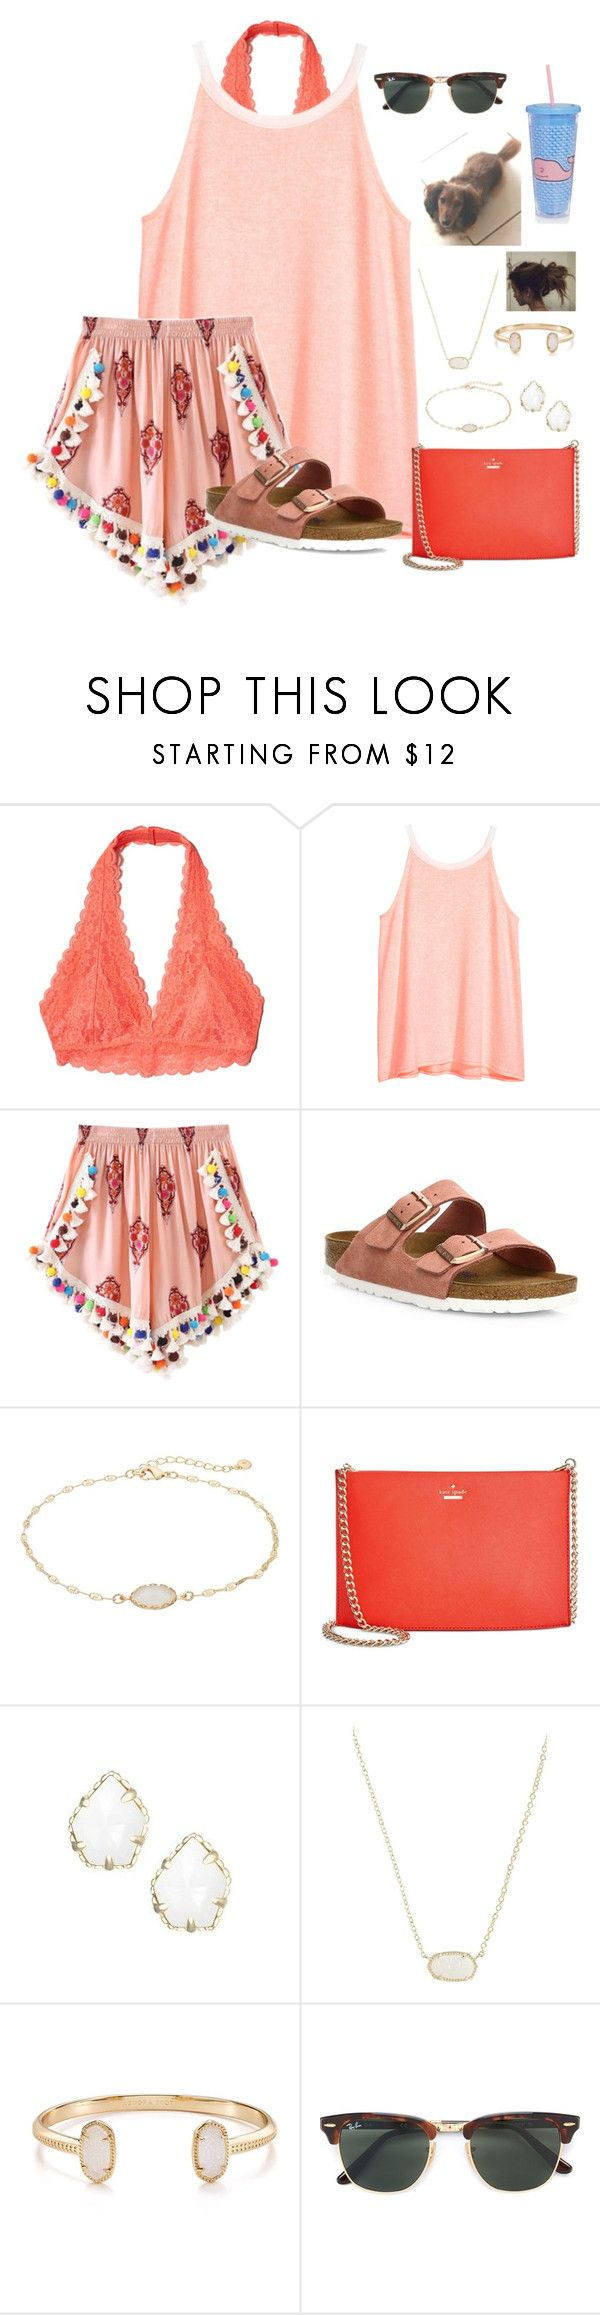 """~~"" by taybug2147 ❤ liked on Polyvore featuring Hollister Co., H&M, Birkenstock, LC Lauren Conrad, Kate Spade, Kendra Scott, Ray-Ban and Sunnylife"